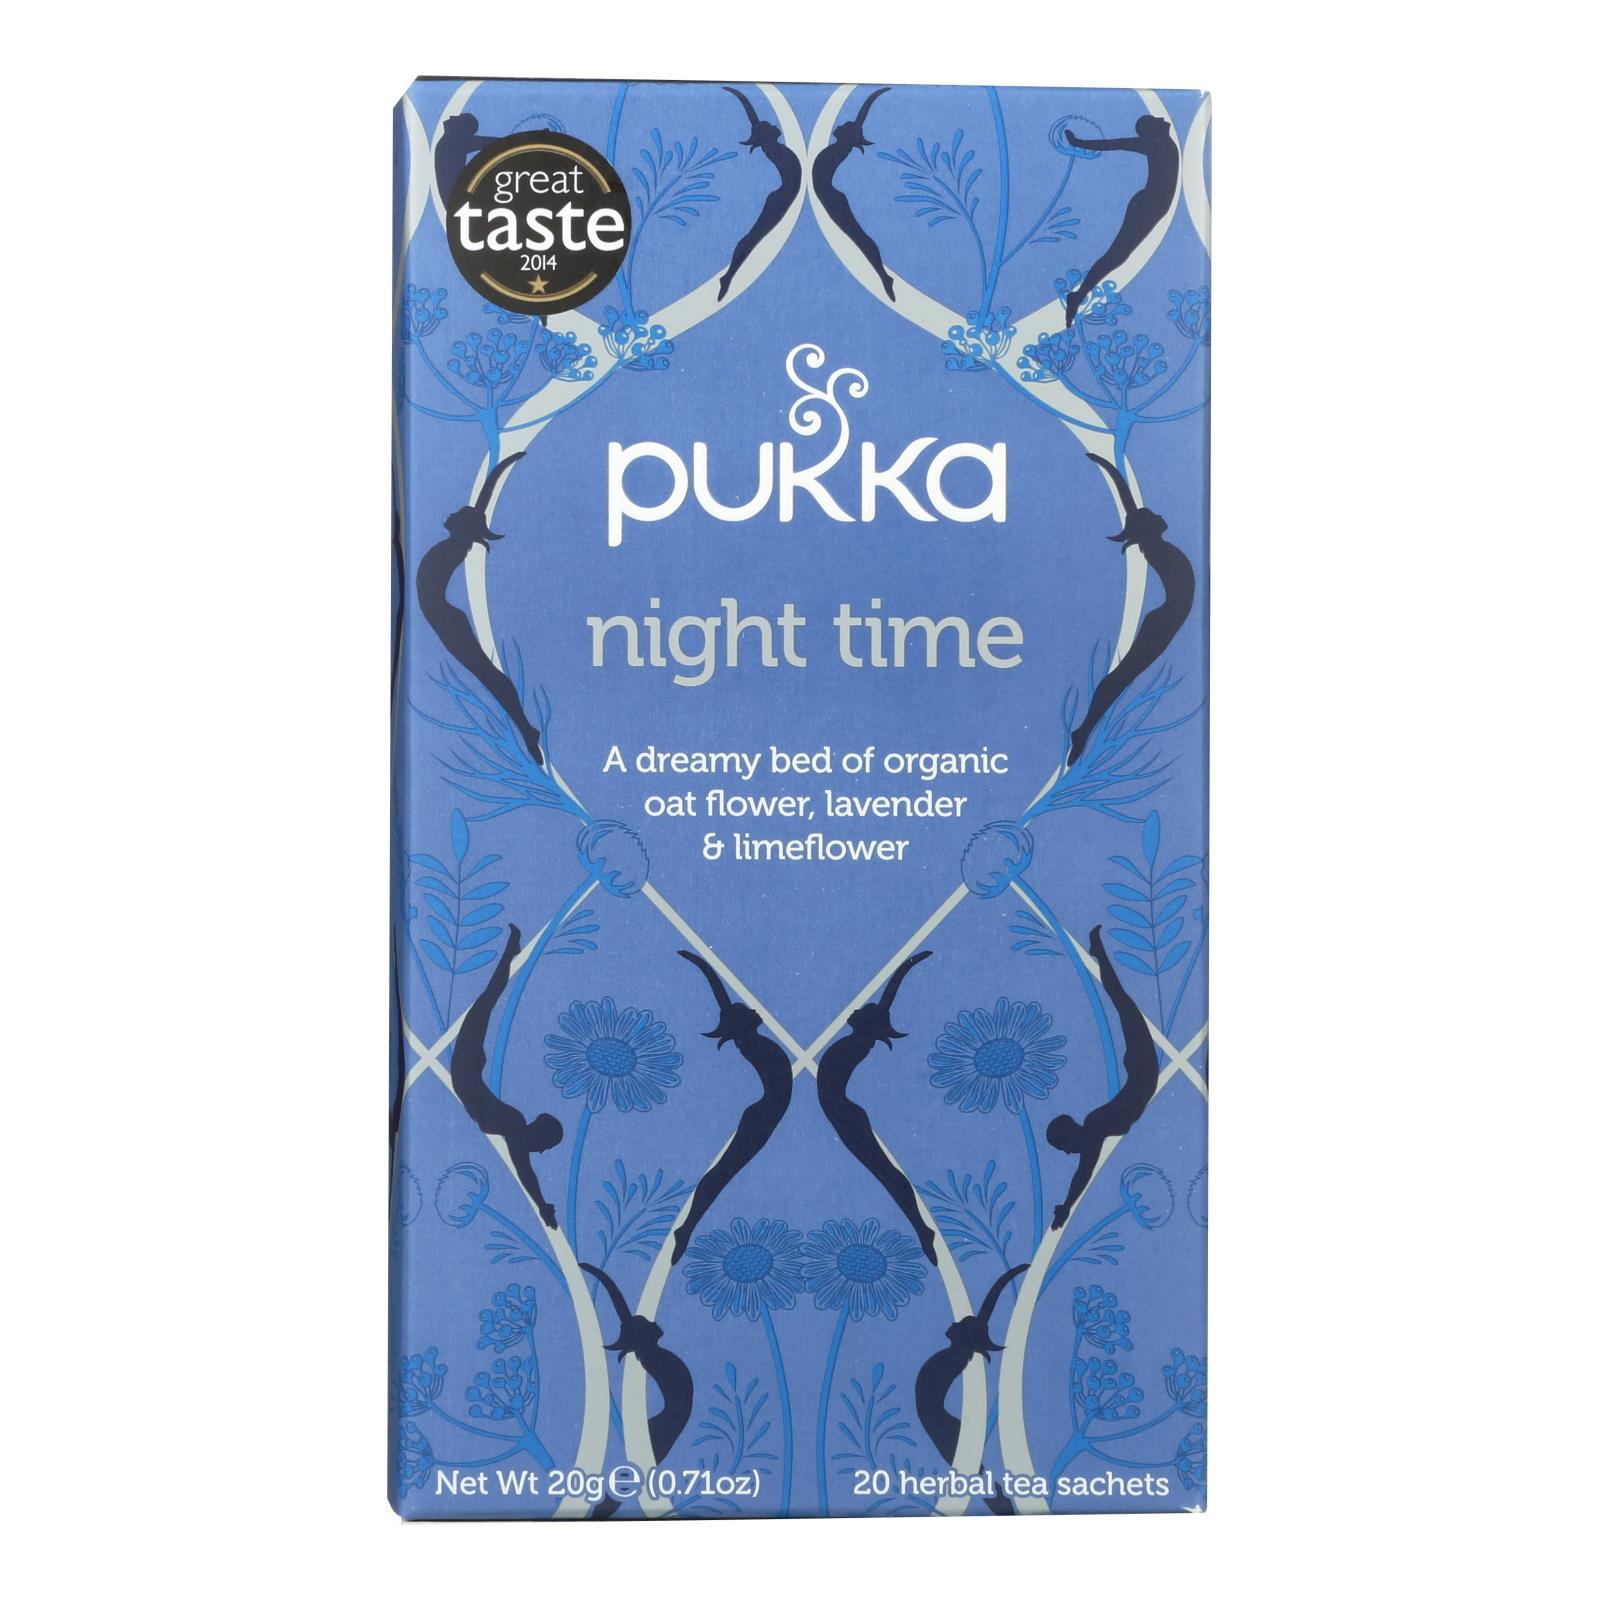 Pukka Herbal Teas Tea - Organic - Night Time - 20 Bags - Case Of 6 - BeeGreen